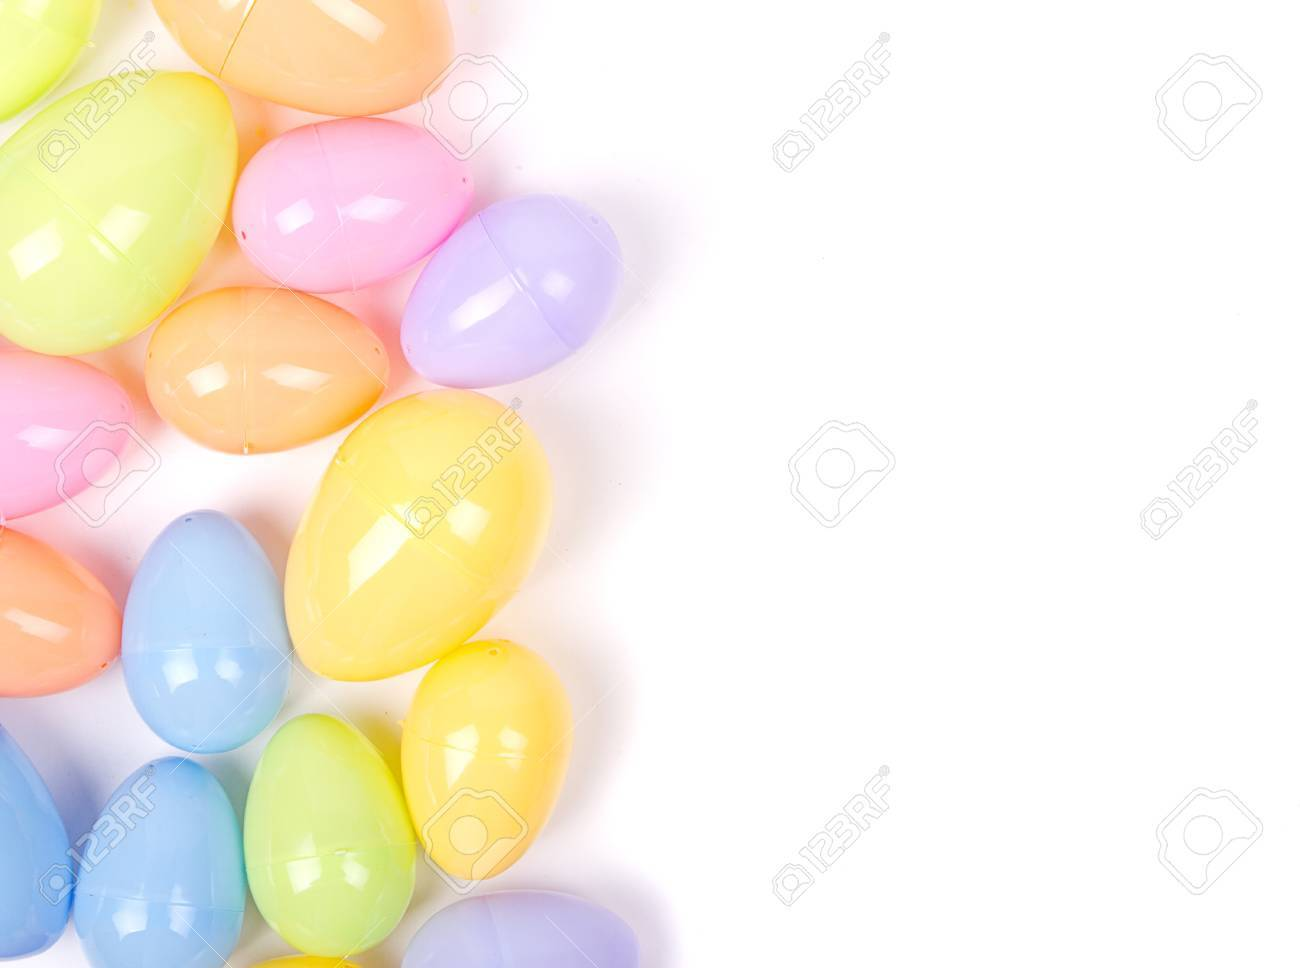 Plastic Easter Eggs On A White Background Stock Photo